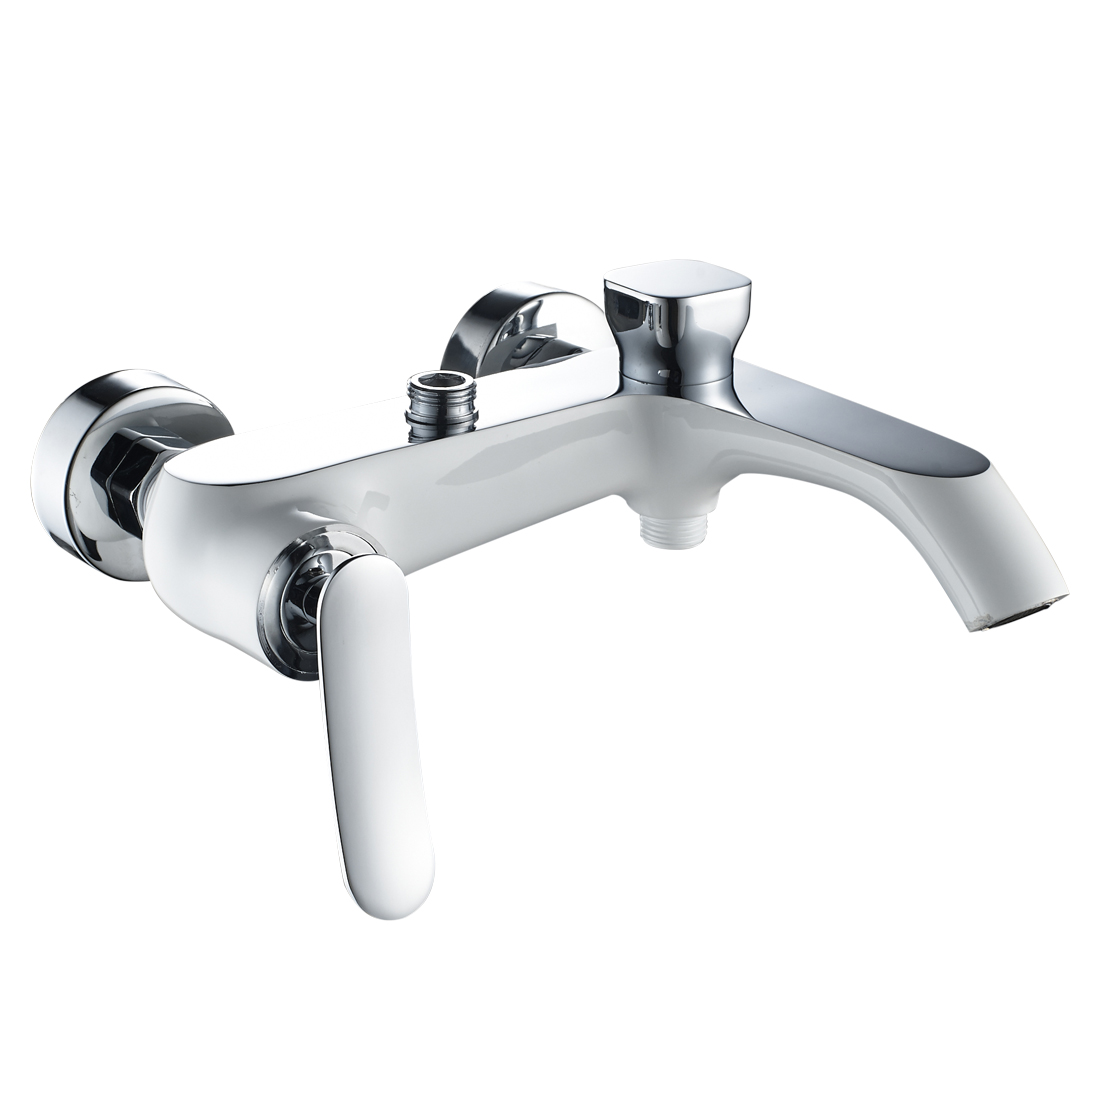 Shower Mixer Valve,Wall Mounted Single Lever Manual Exposed Shower Hot/Cold Valve Tap Faucet,Chrome with White Finish